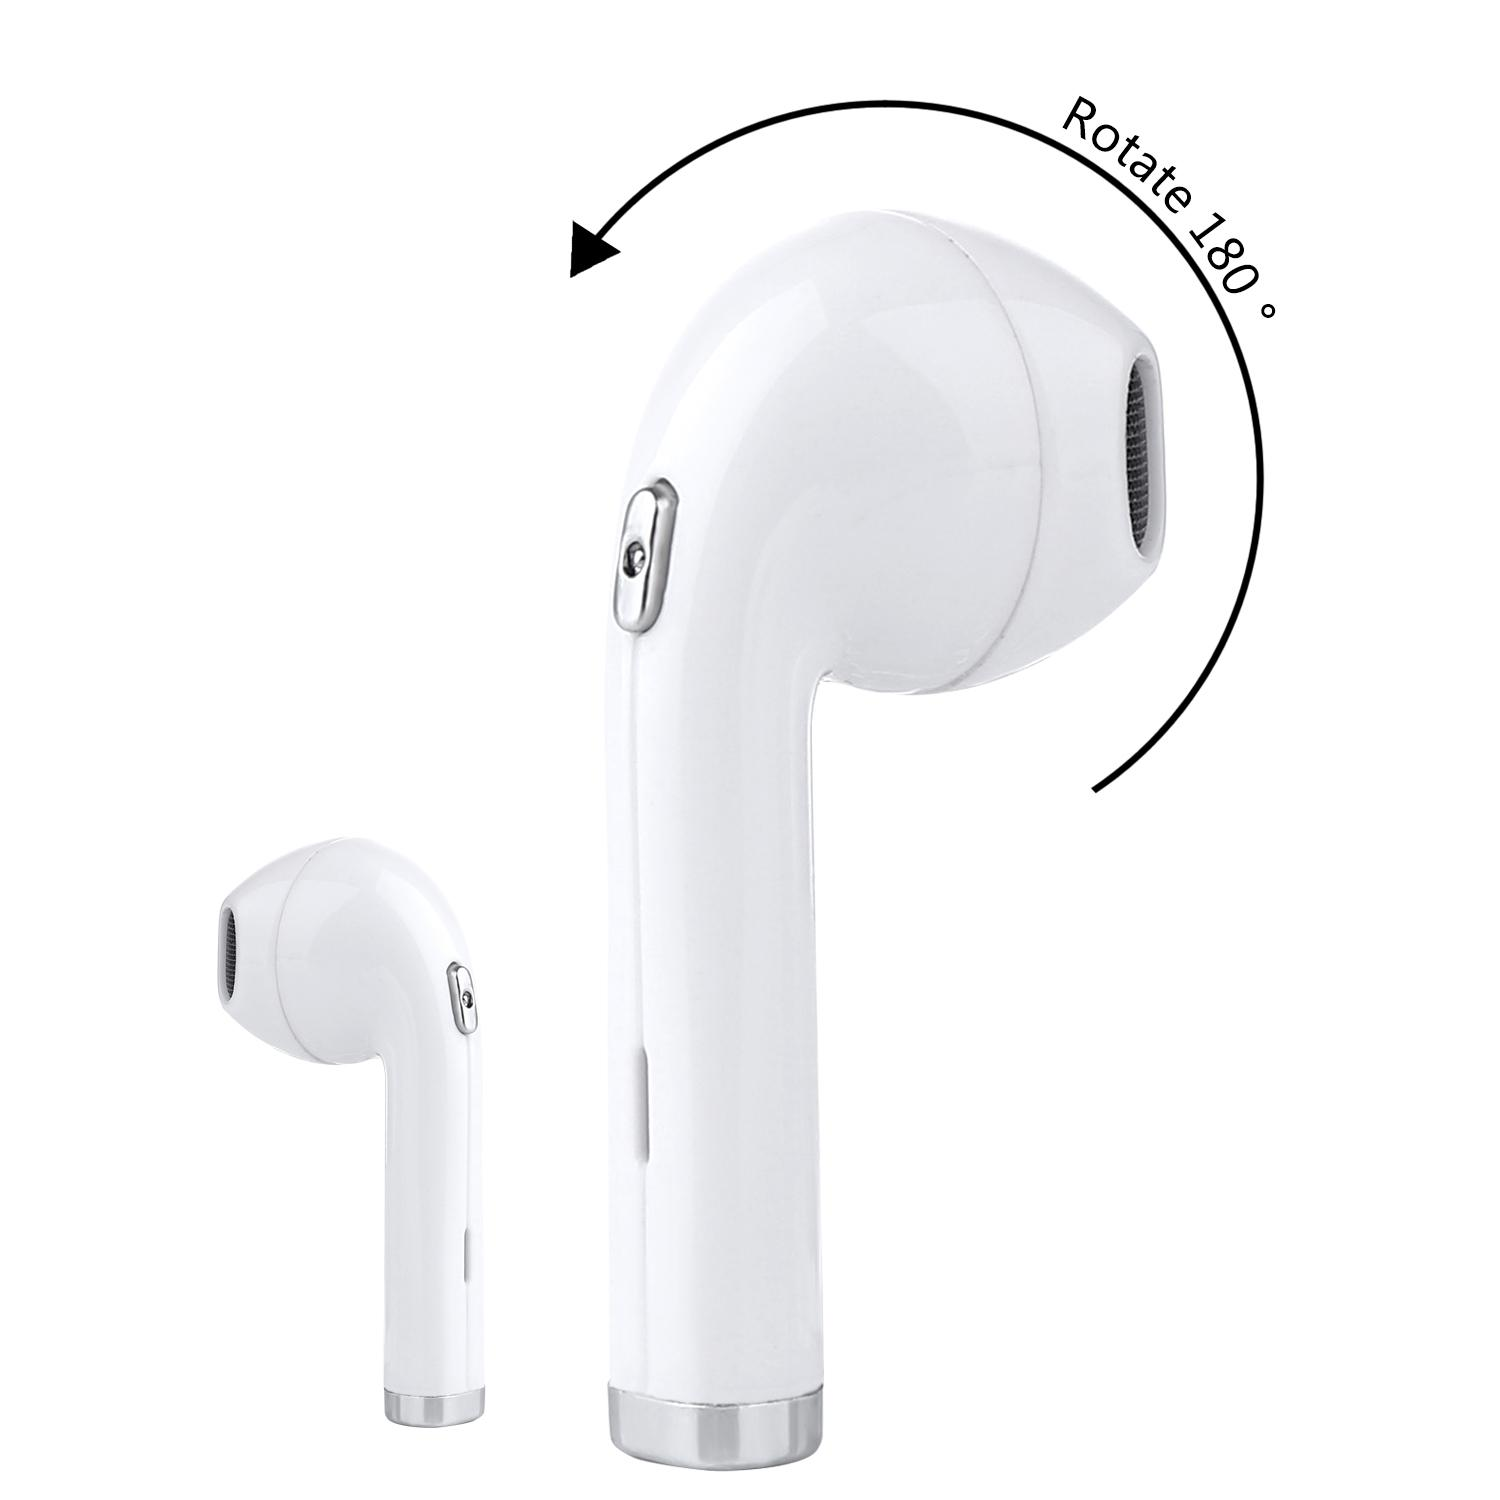 Shop For Bluetooth 4 1 Wireless Earbud Bht Updated 180 Degree Rotated I8 Mini In Ear Earphone Earpiece Headphone Noise Cancelling With Mic For Iphone 8 X 7 7Plus 6 6S 6 Plus 5S Ipad Ipod Android Samsung S8 S8 Plus One Pcs